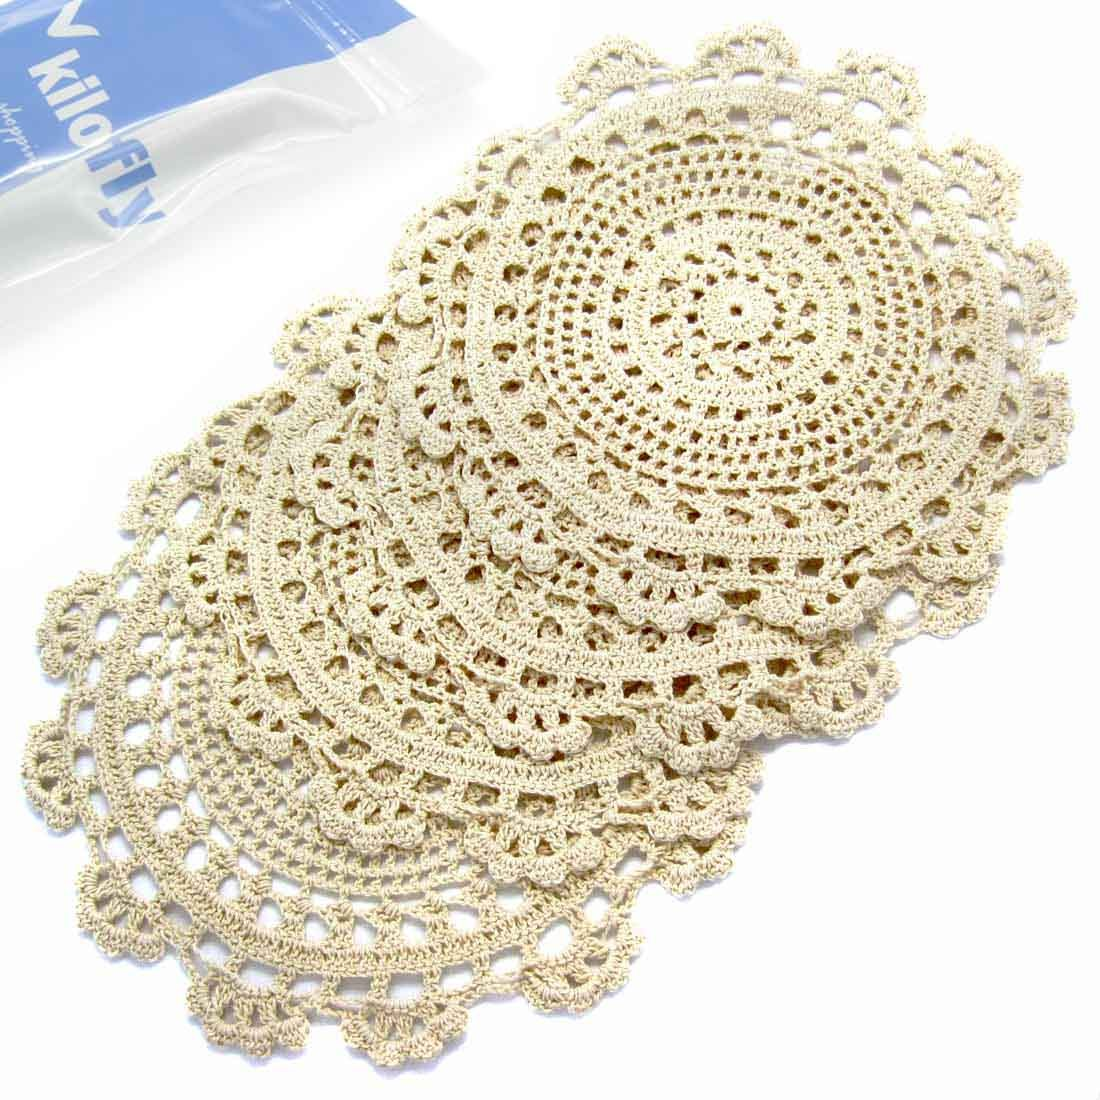 kilofly Handmade Crochet Round Cotton Lace Table Placemats Doilies Value Pack [Set of 4], Medallion, 9.8 x 9.6 inch, Beige